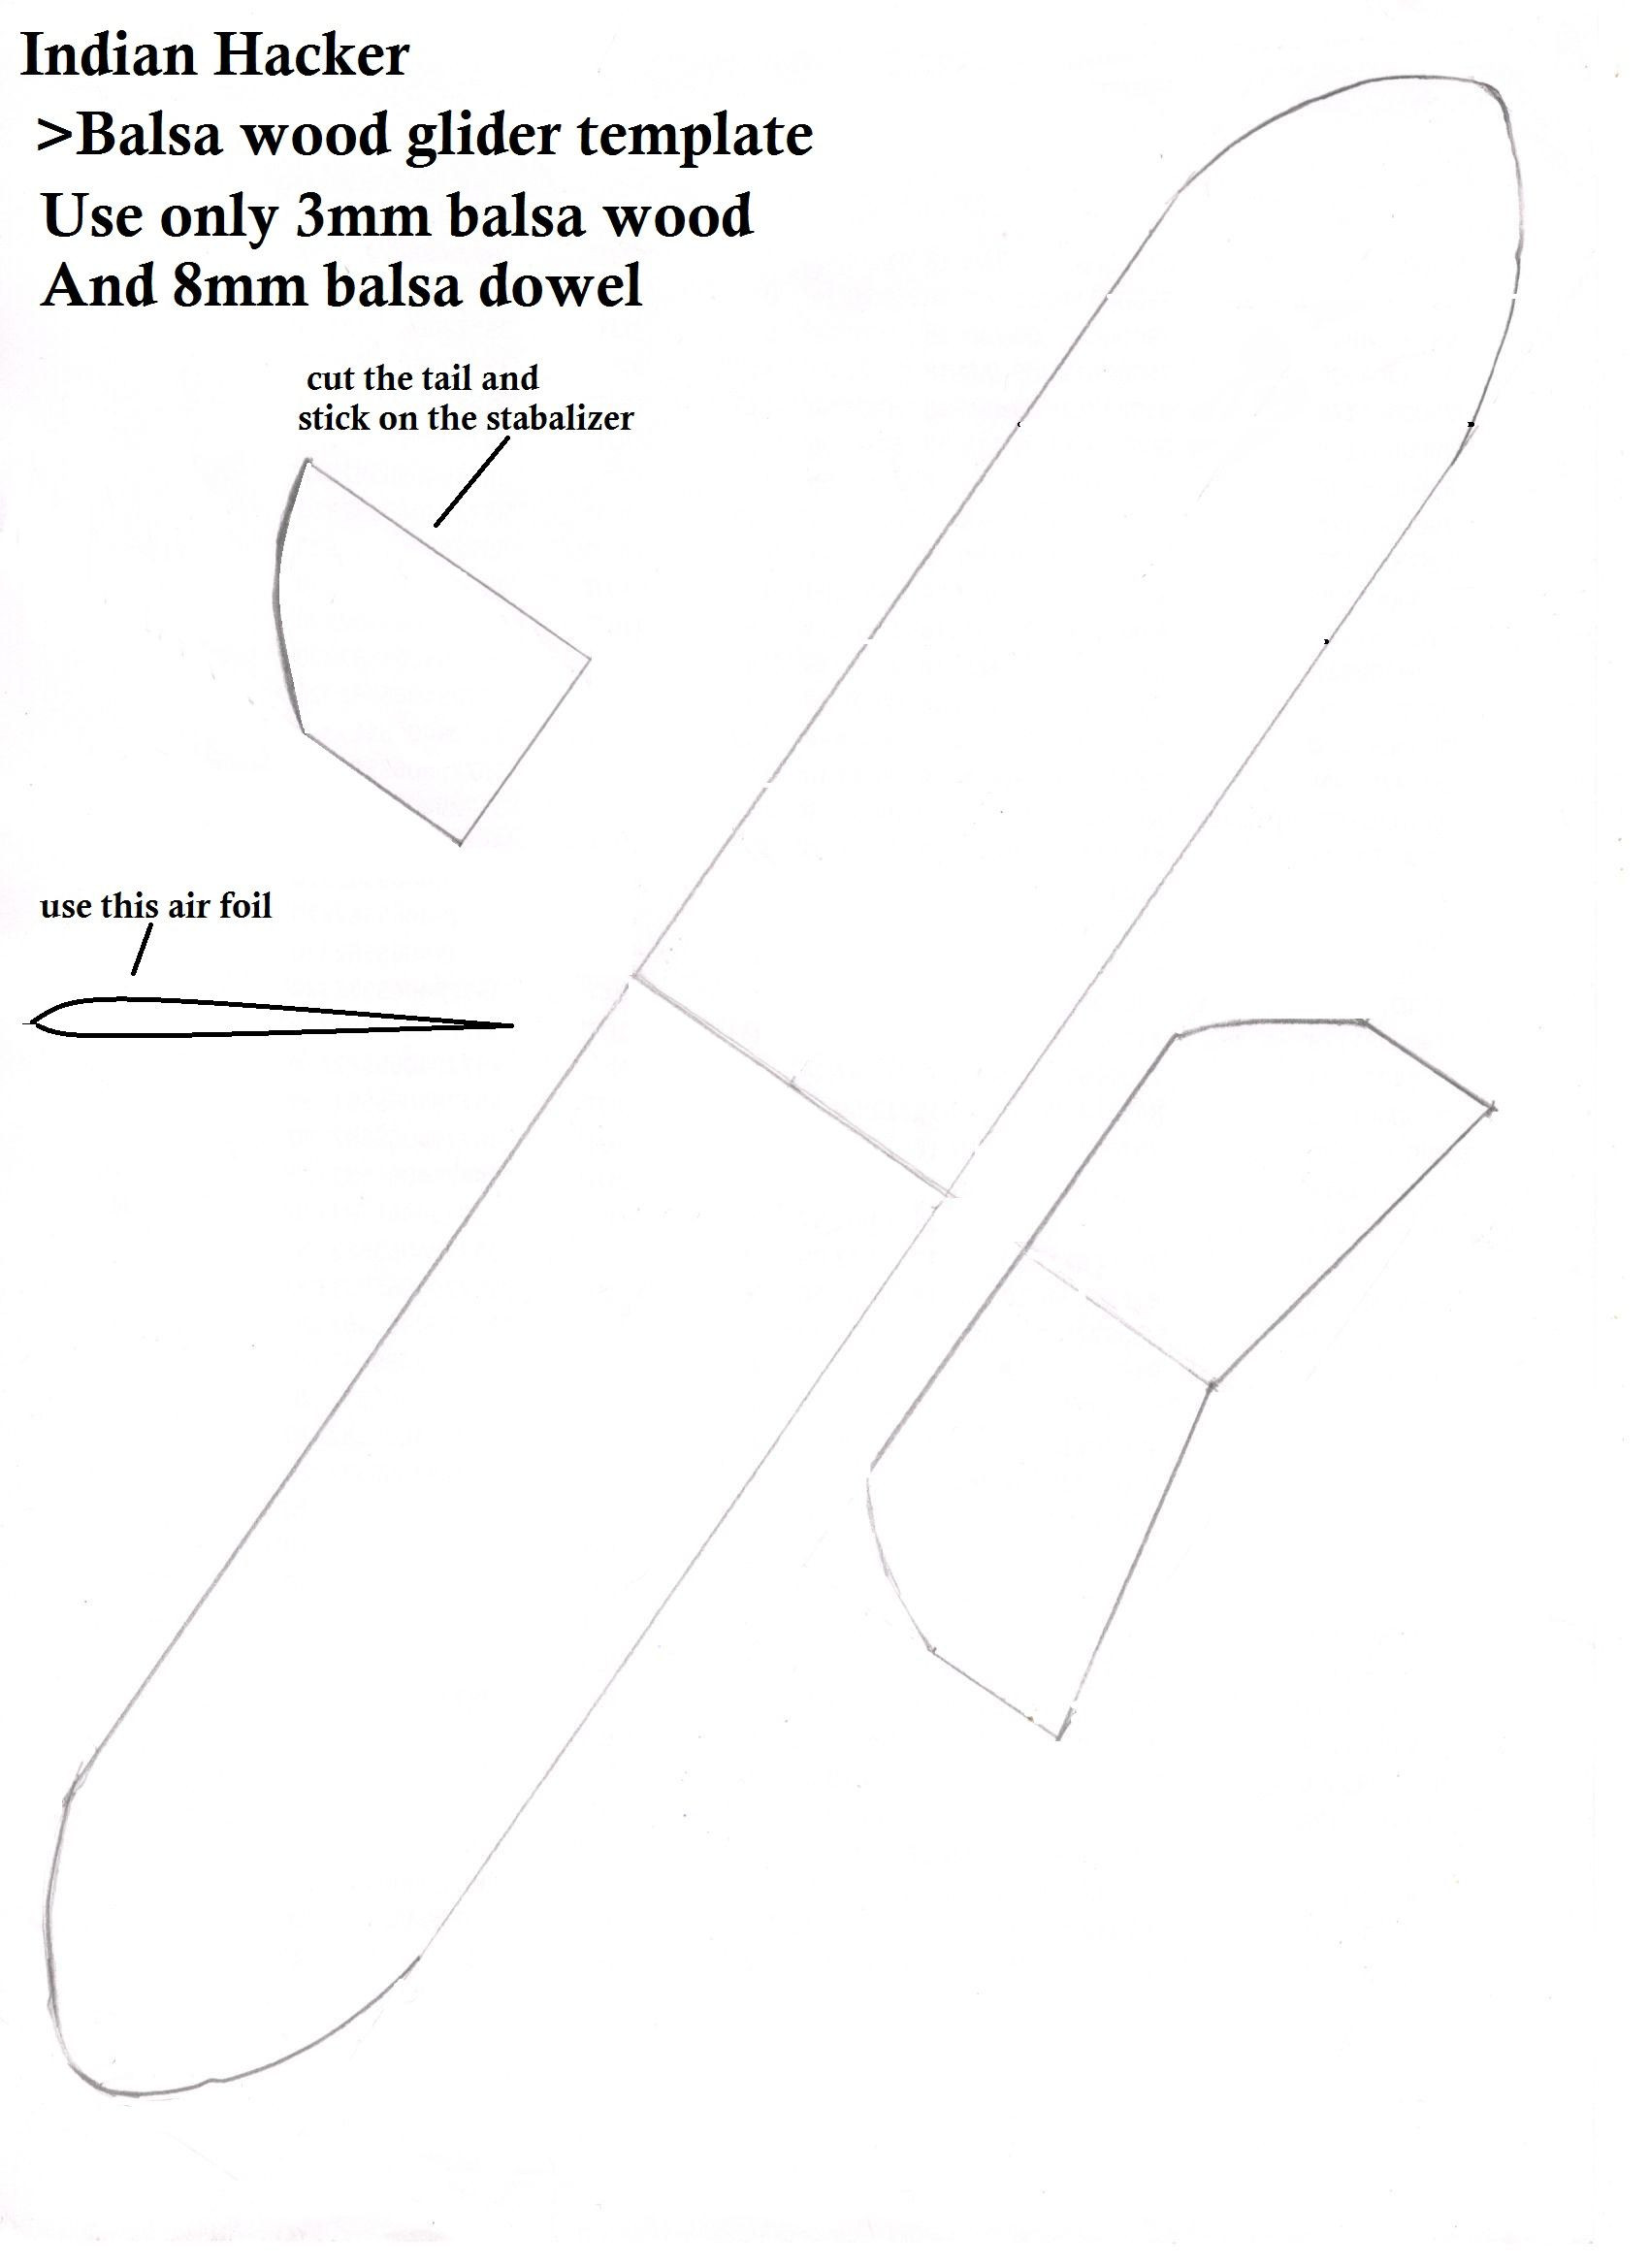 this is a template for making balsa wood glider